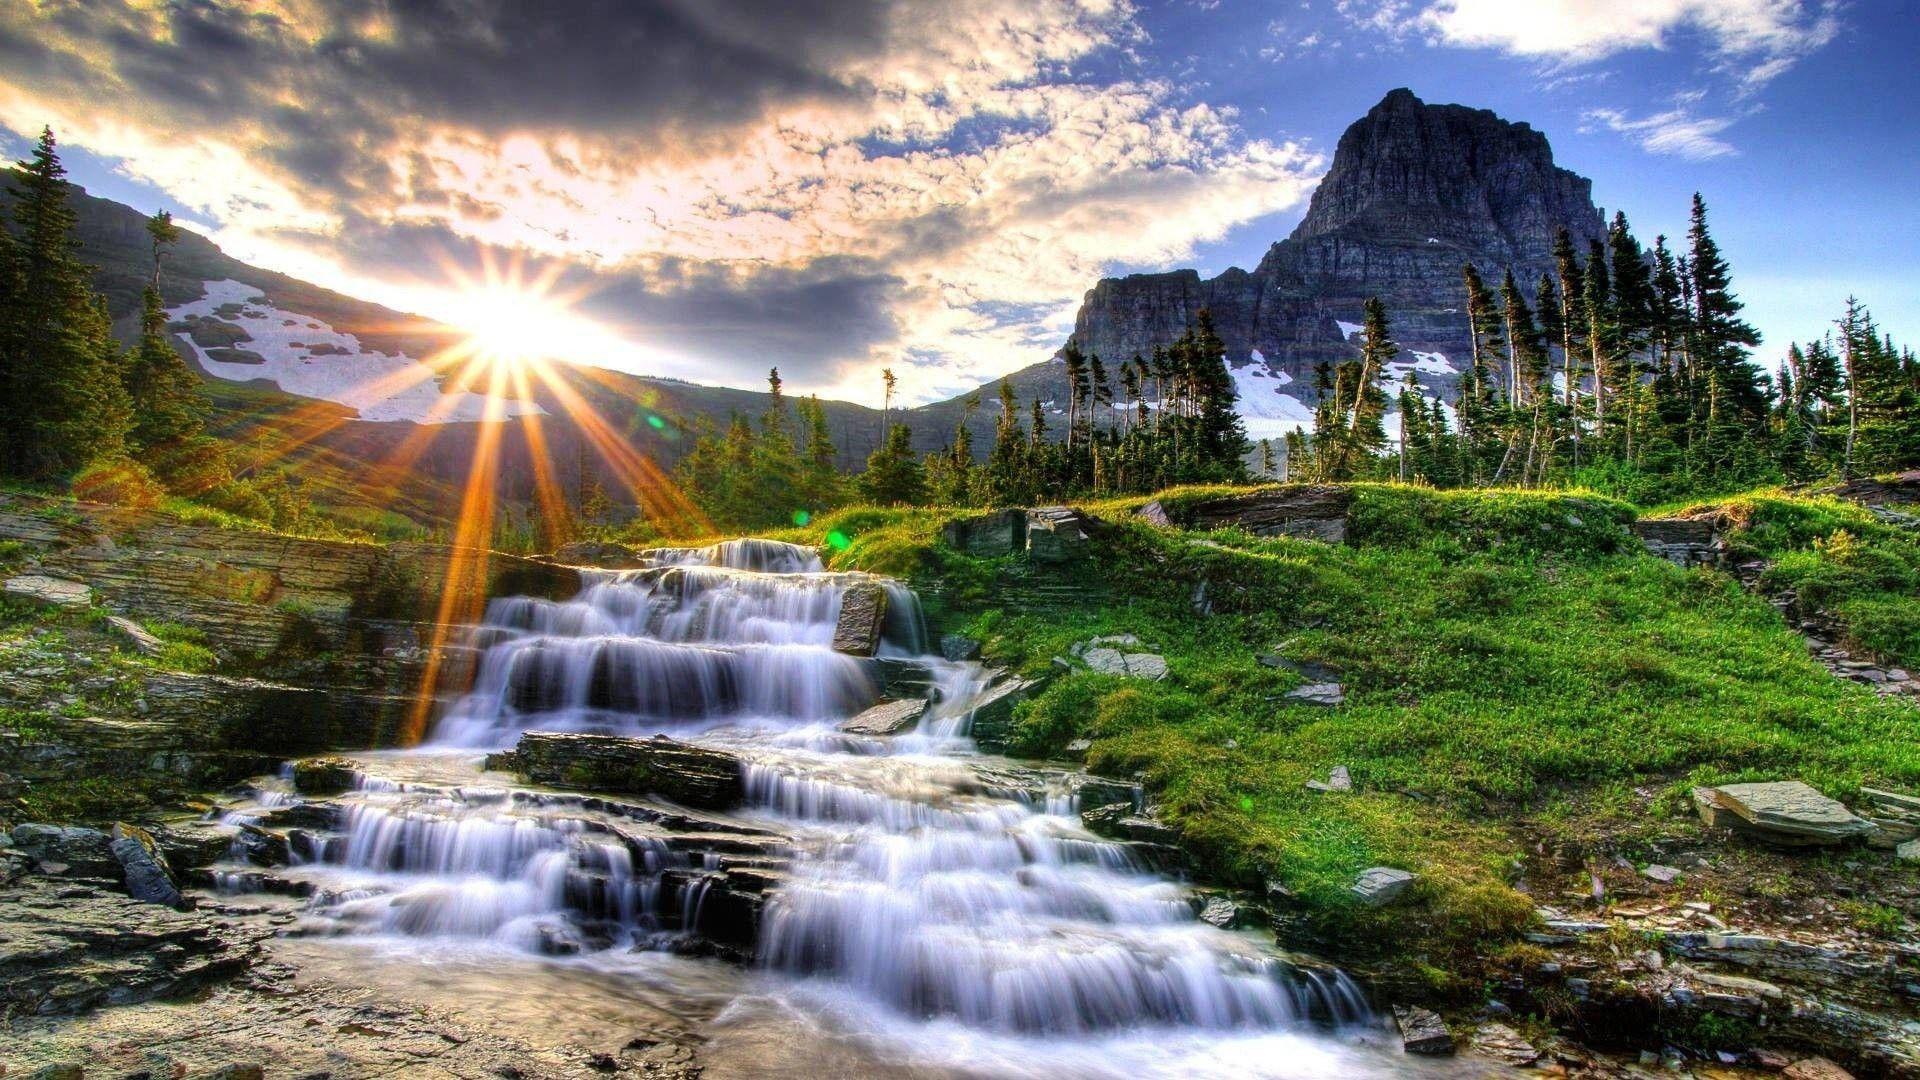 1920x1080 1920x1080 1920x1080 Download Nature wallpapers hd 1920x1080